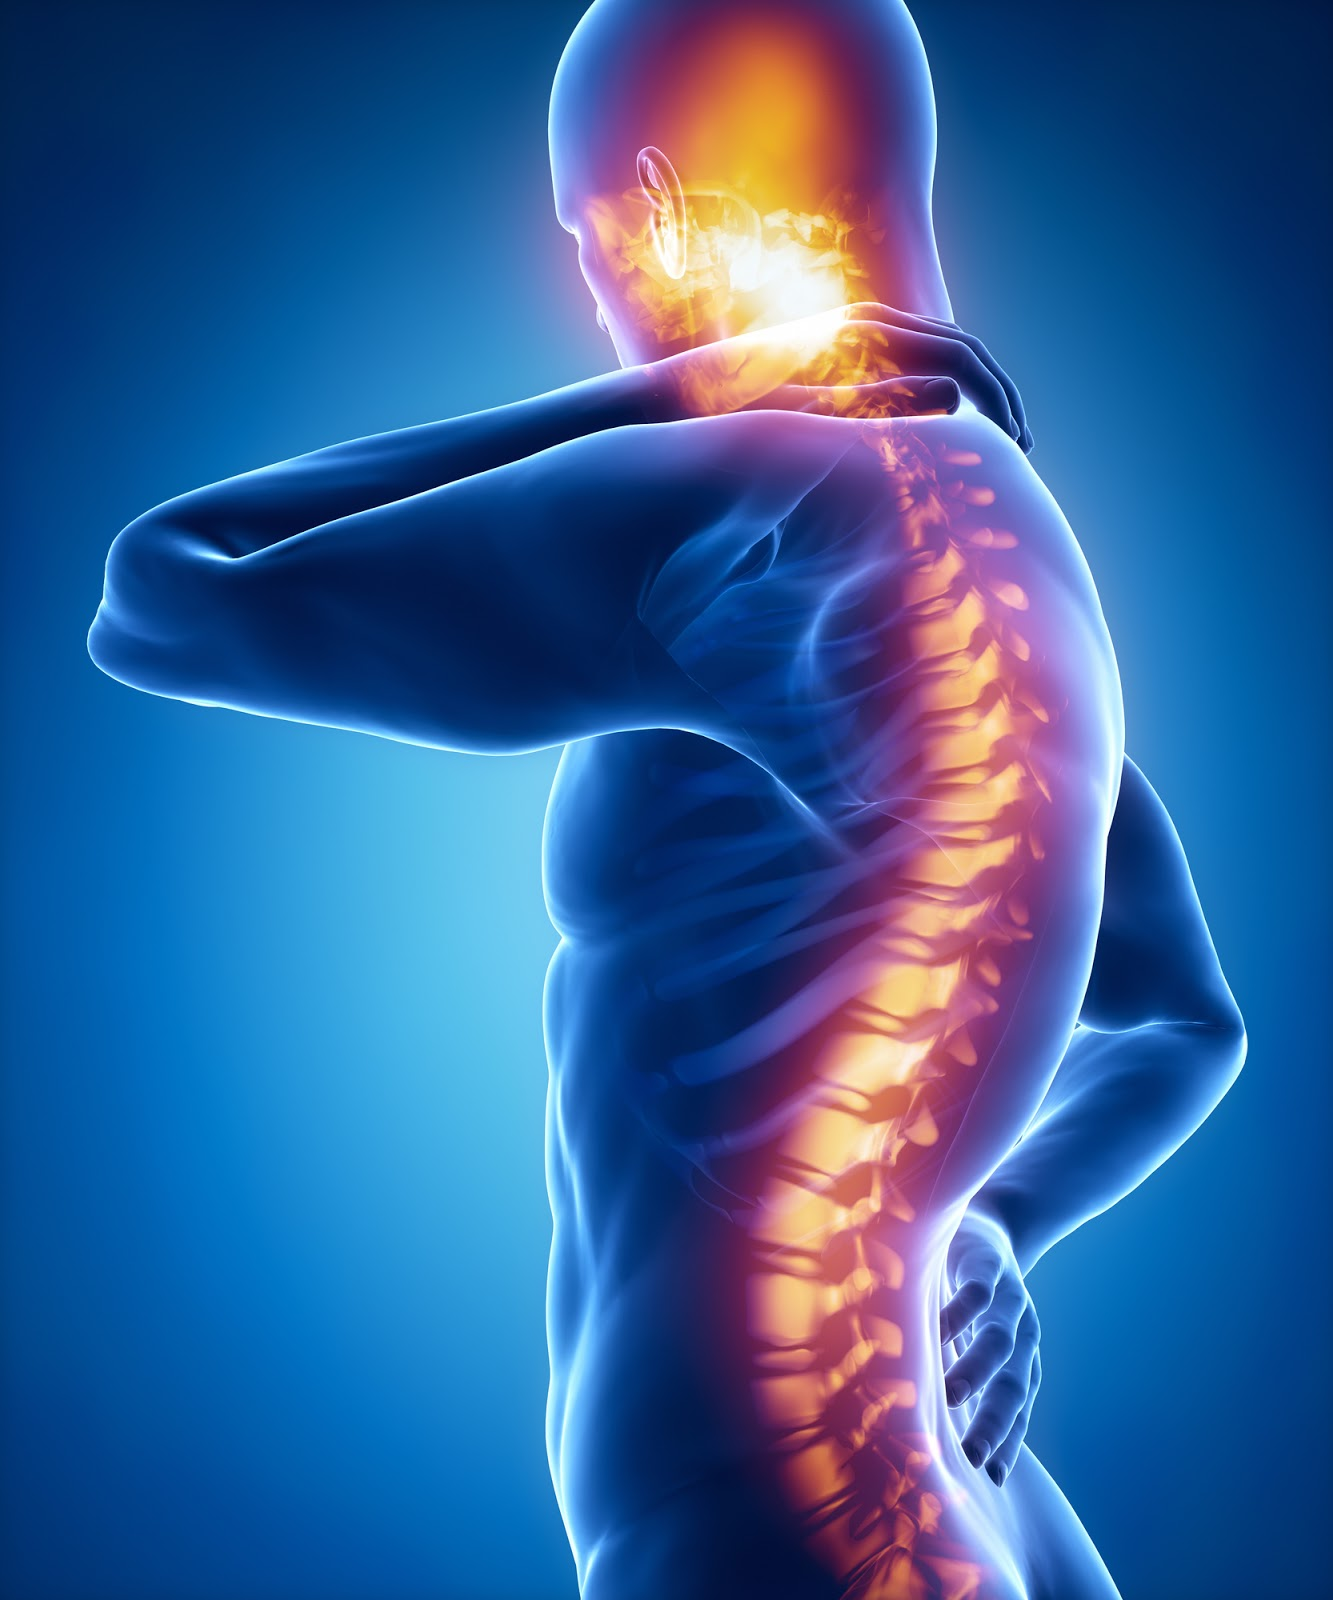 5 Tips About Shockwave Therapy for Those In Chronic Pain